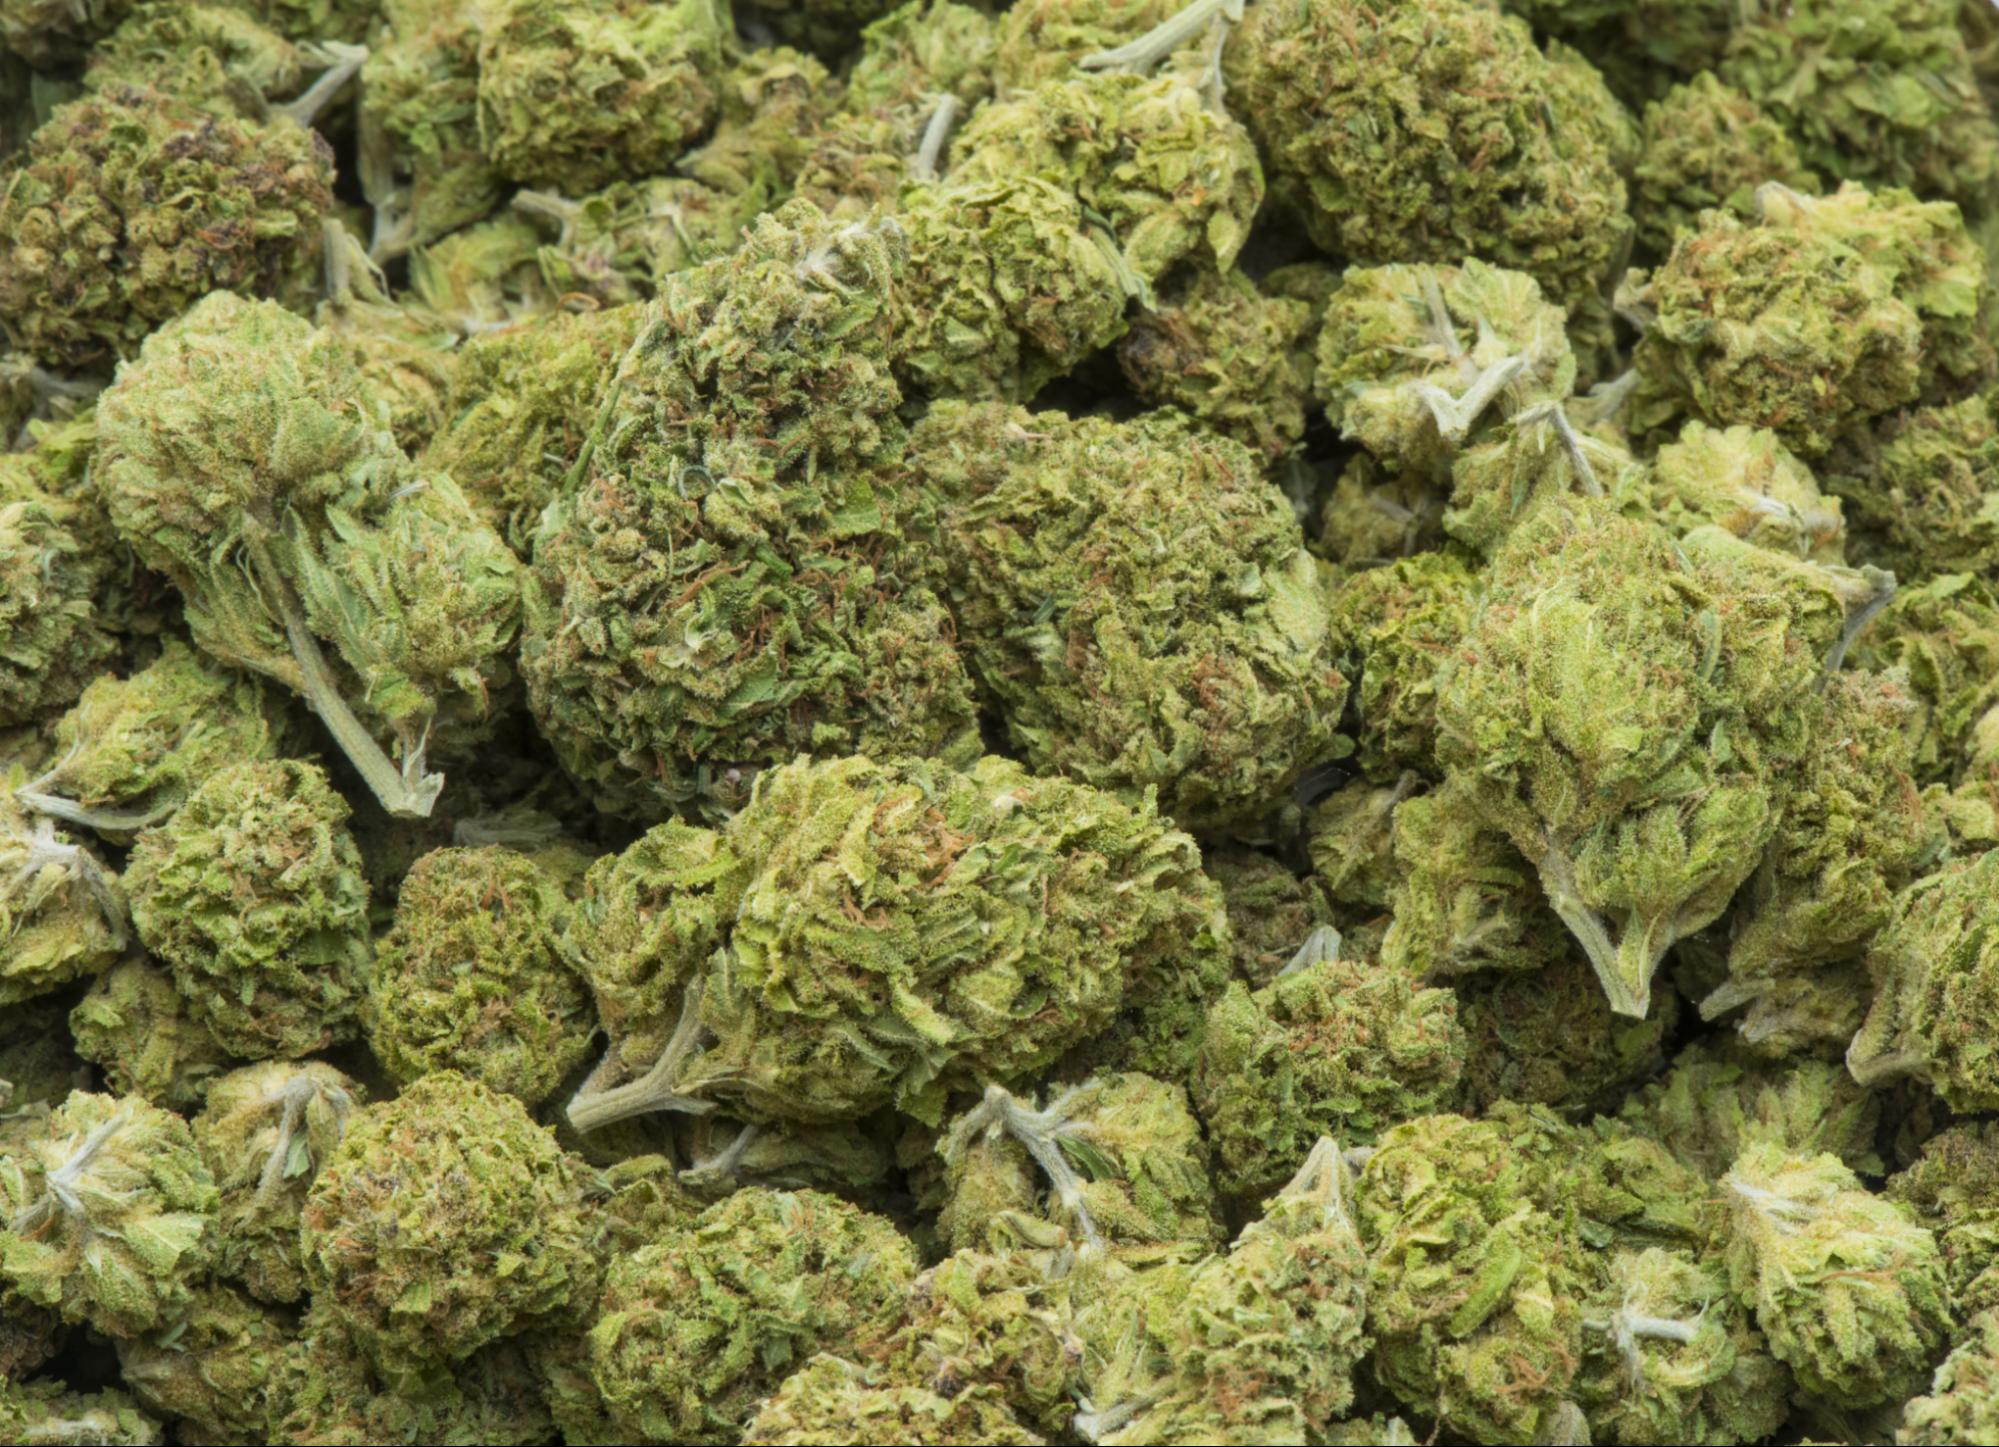 medical uses of marijuana States have legalized medical marijuana because of decisions made by voters or legislators—not because of scientific evidence of its benefits and risks it's challenging to study the health effects of marijuana because of legal restrictions and variability in the concentration of the plant's psychoactive chemicals.